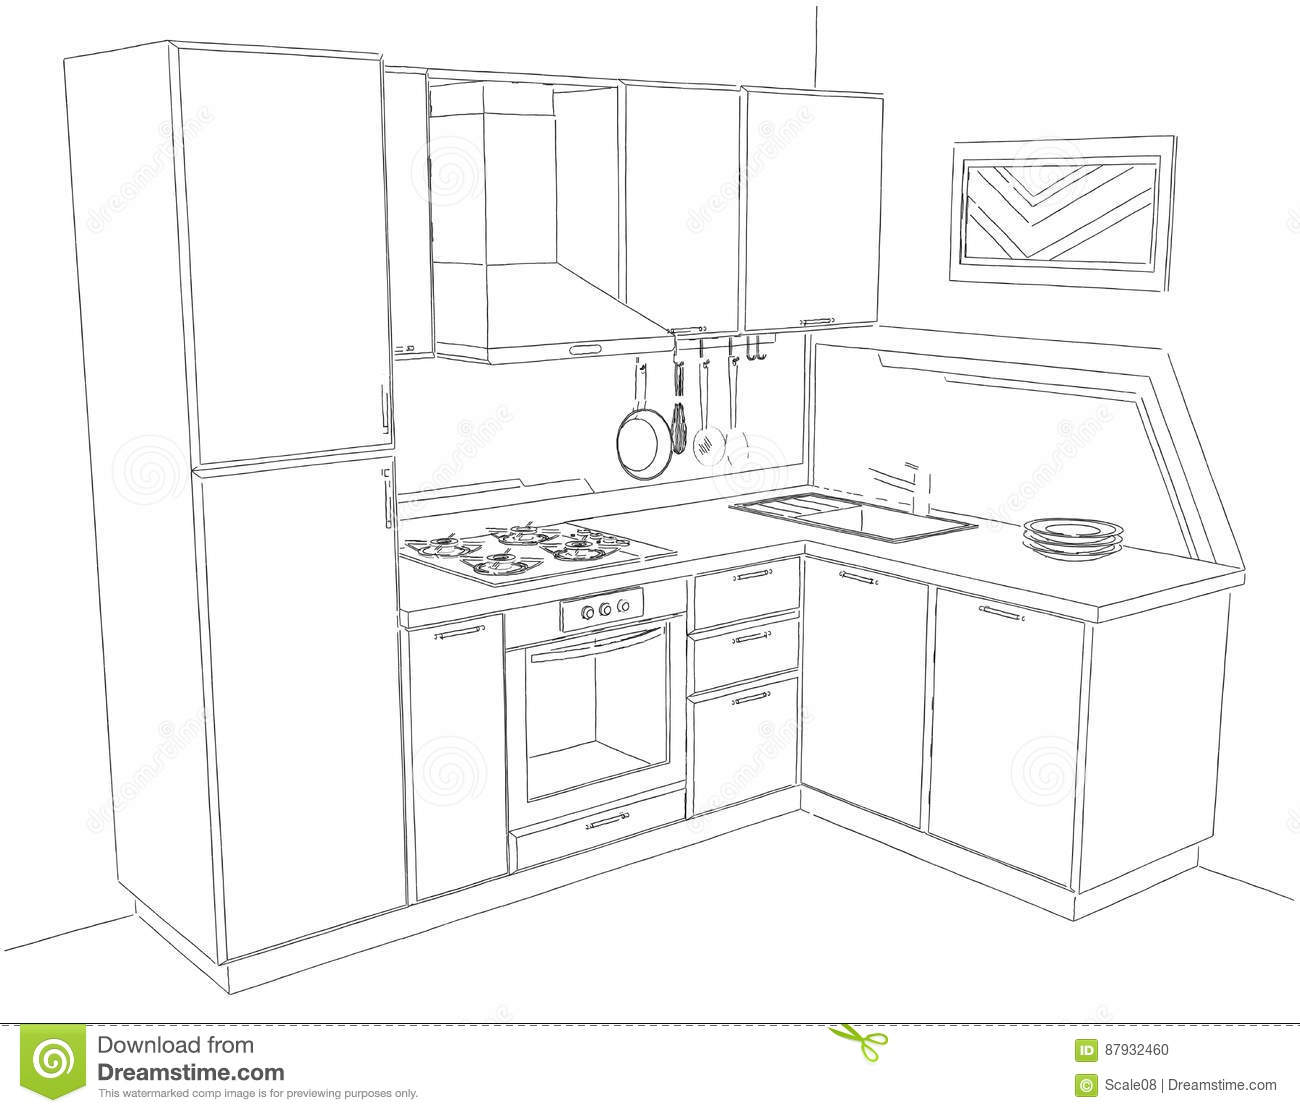 Kitchen perspective drawing - Royalty Free Illustration